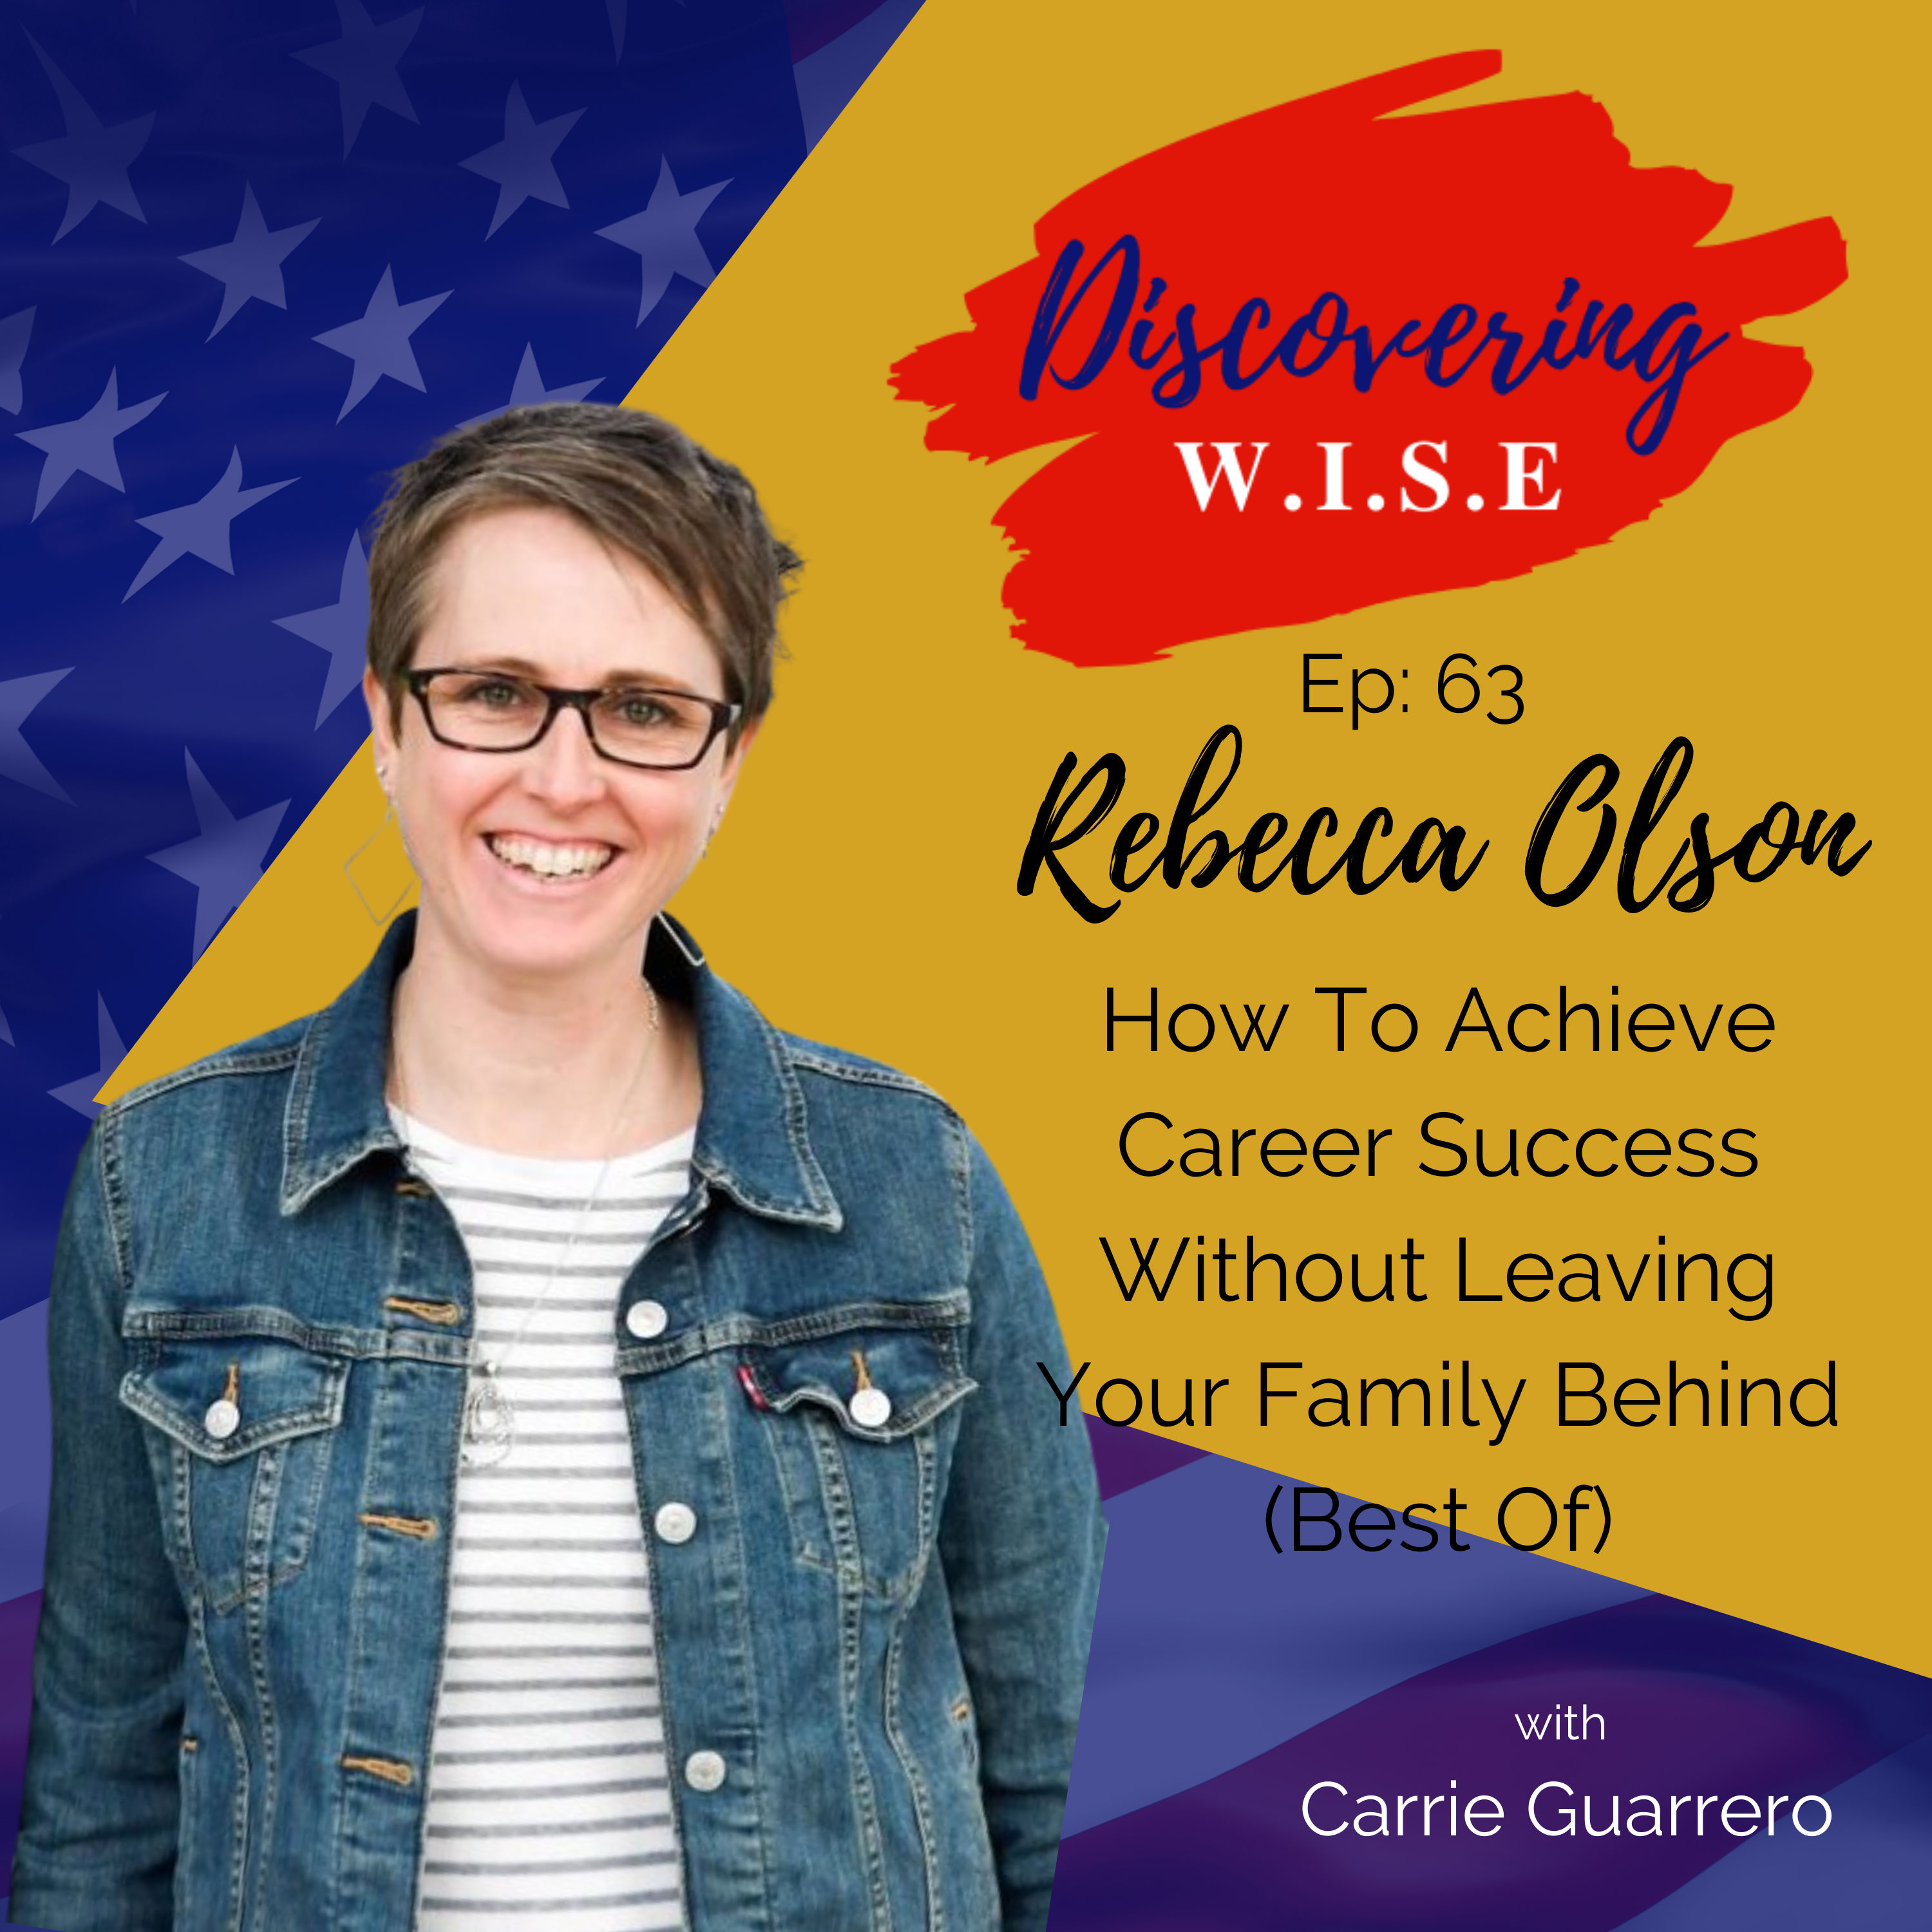 Ep 63: How To Achieve Career Success Without Leaving Your Family Behind with Rebecca Olson (Revisit) show art